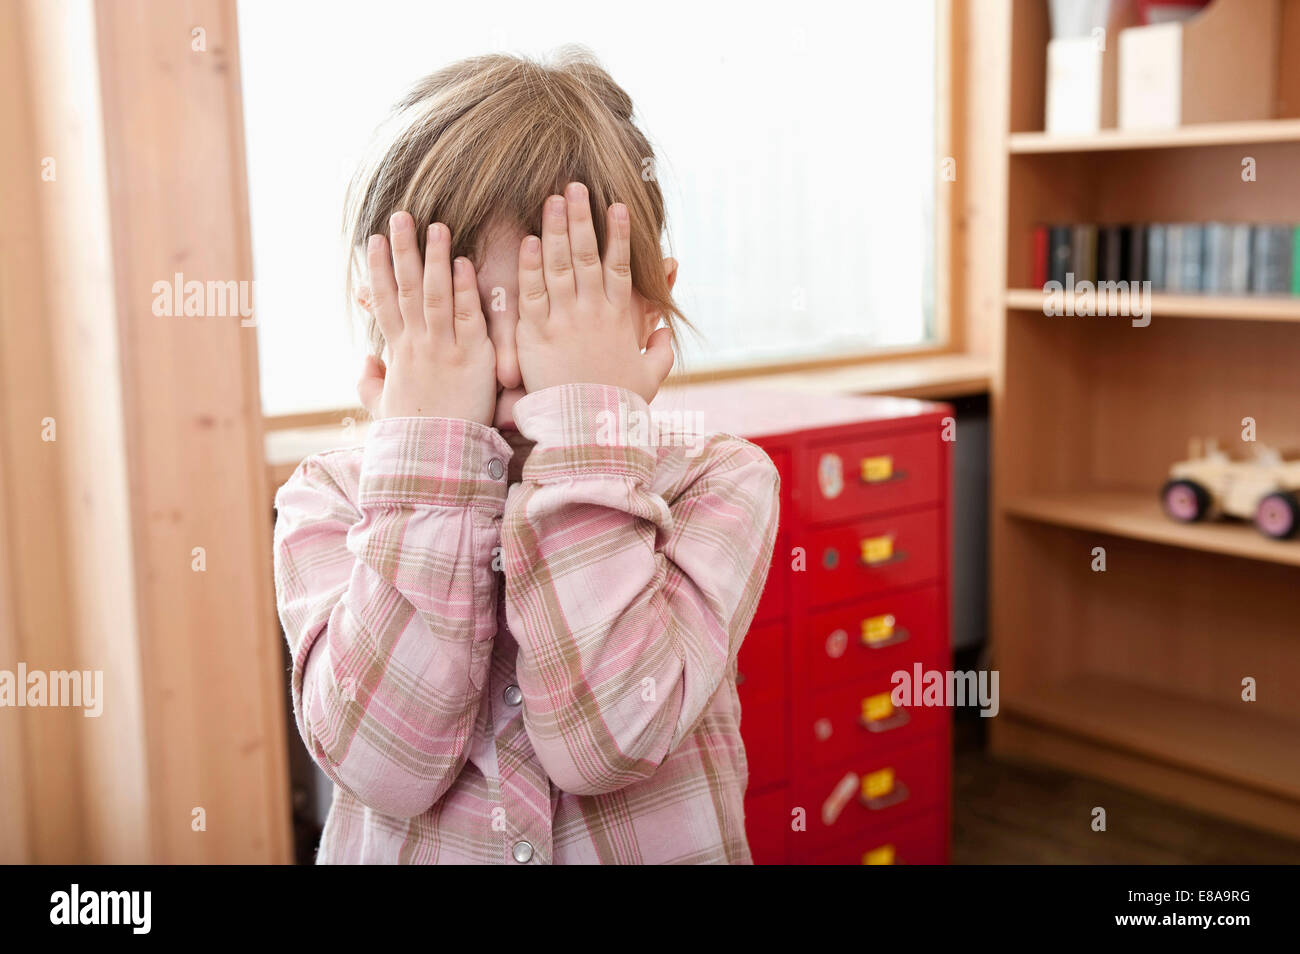 Little girl covering her face with her hands - Stock Image